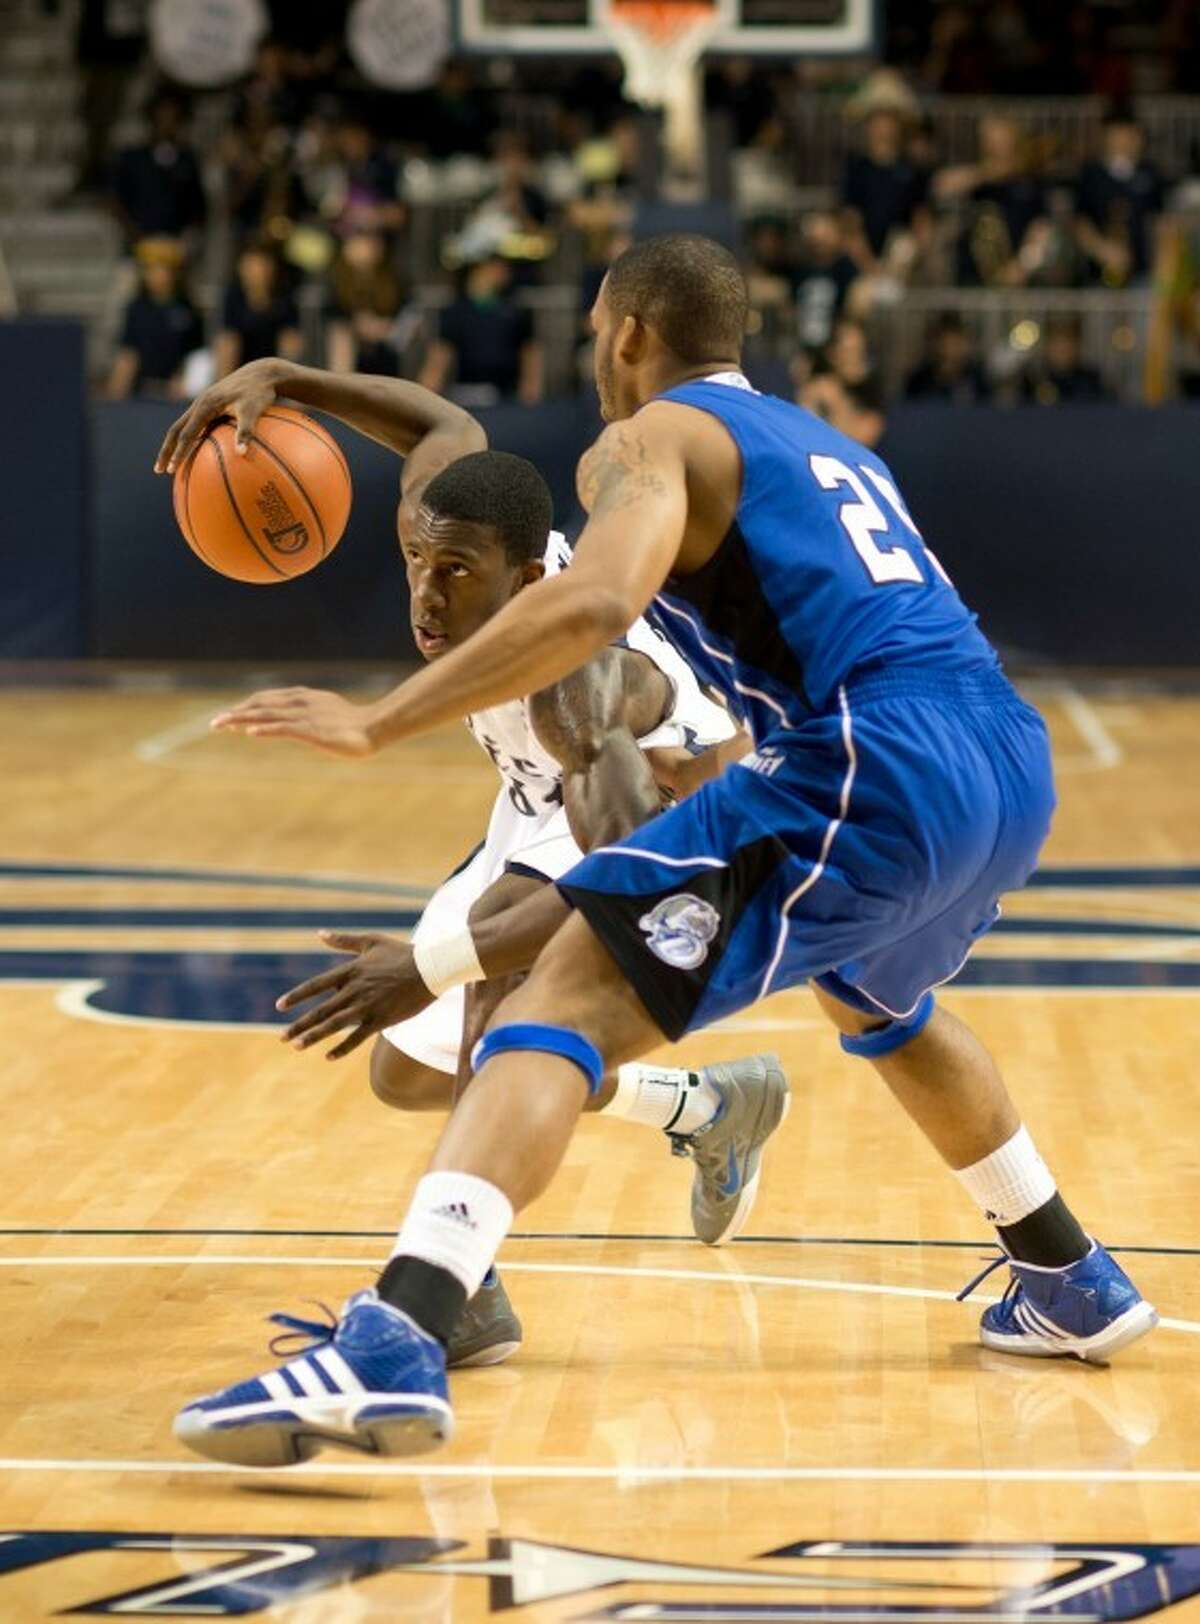 Dylan Ennis amassed 17 points, six assists, six rebounds and two blocks to lead Rice to a 74-68 victory against Drake in the second round of the CIT on Saturday at Tudor Fieldhouse.